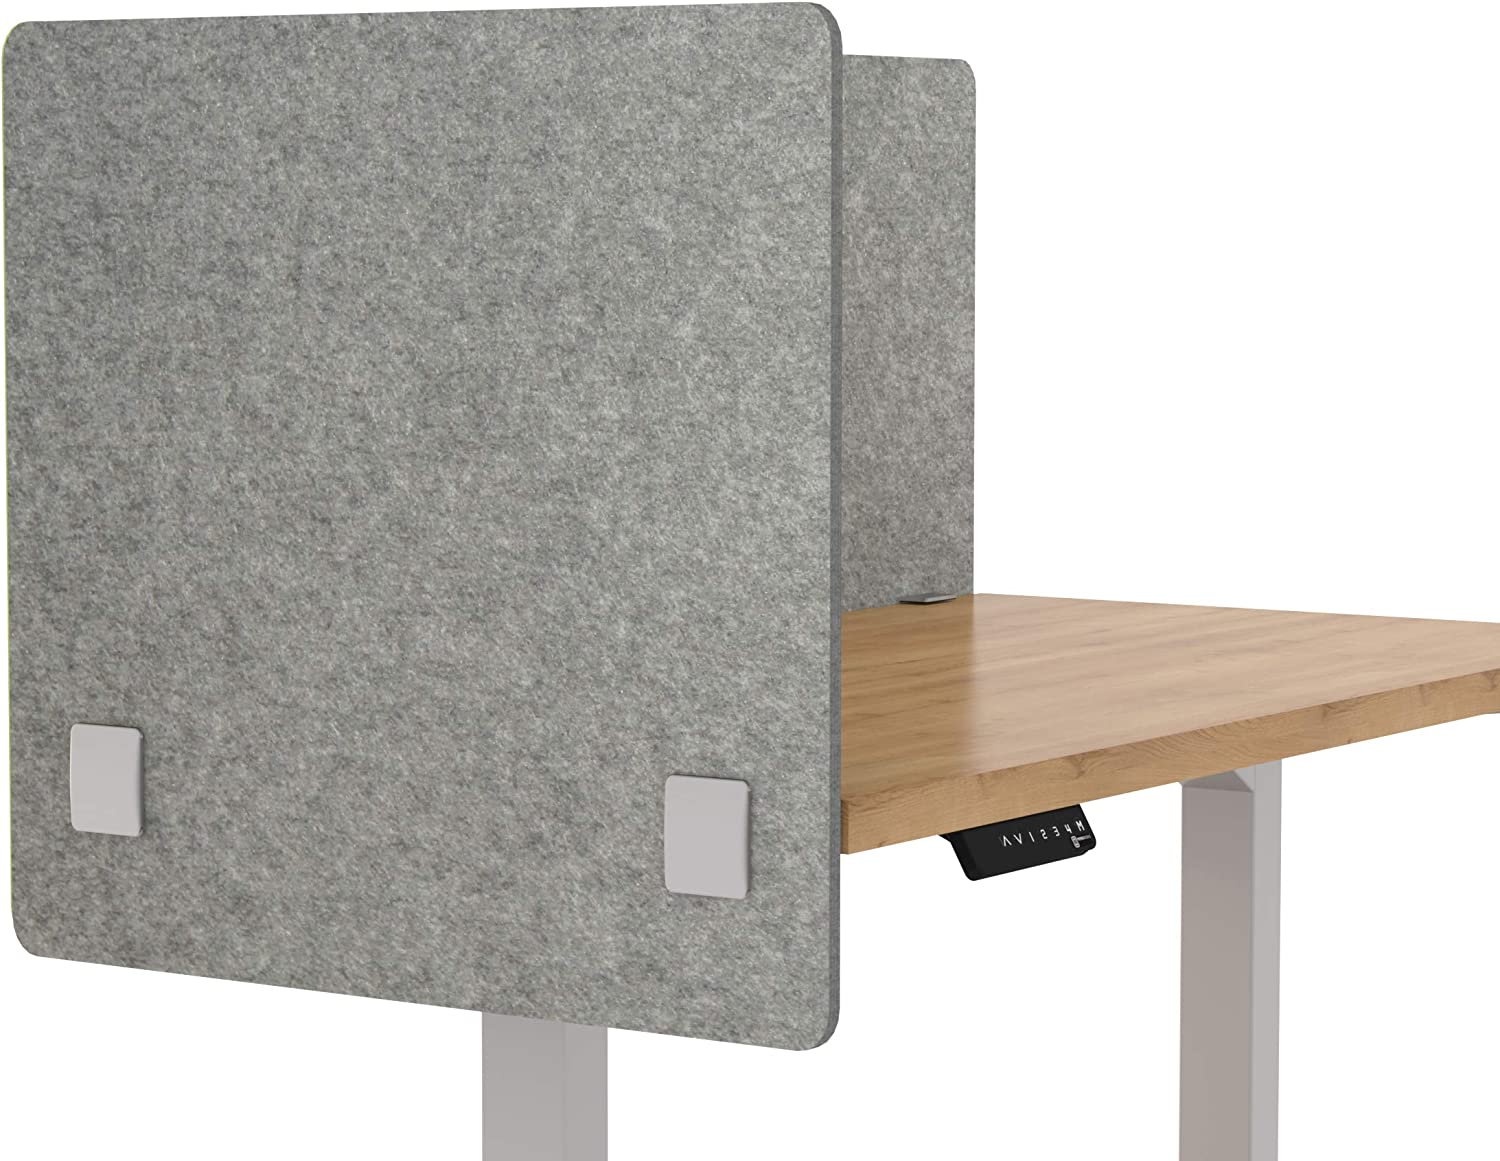 "VaRoom Acoustic Partition, Sound Absorbing Desk Divider – 24"" W x 24""H Privacy Desk Mounted Cubicle Panel, Ash Grey"